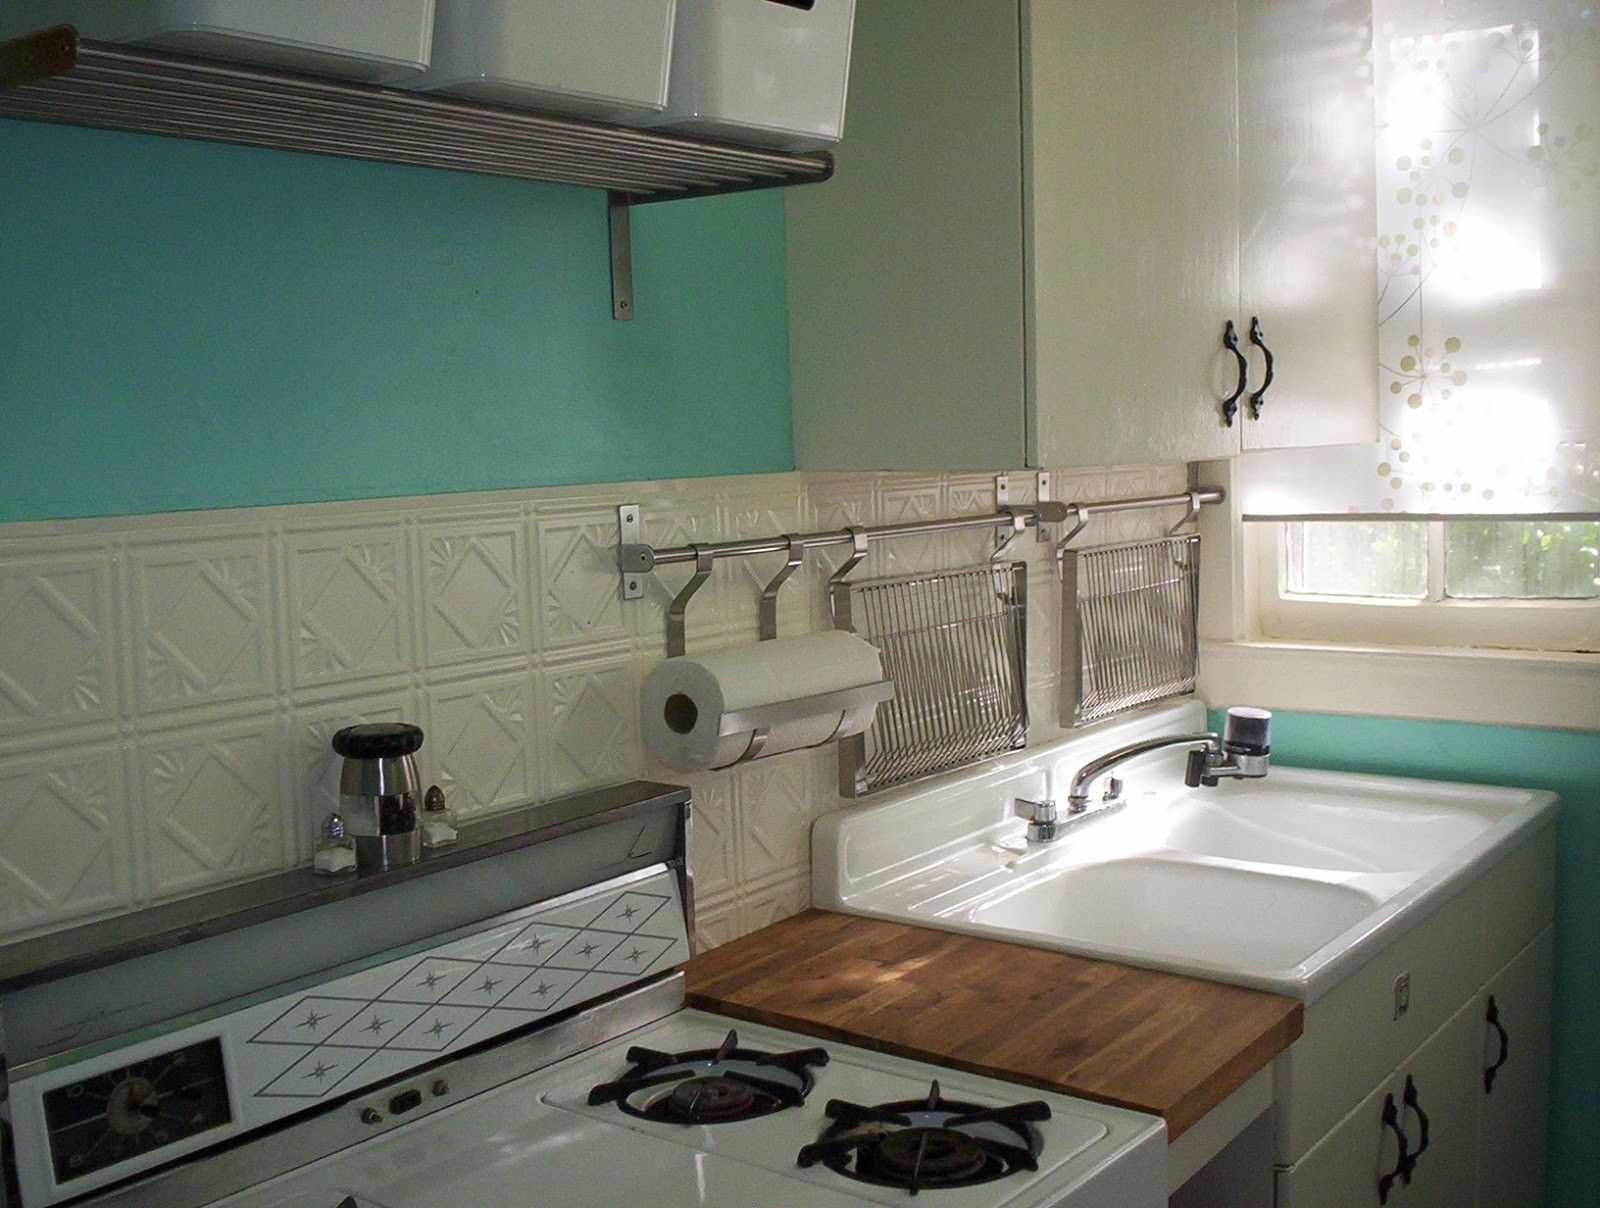 Retro Kitchen Sink Ome design decor and renovation renov8or h retro renovation for rental kitchen workwithnaturefo